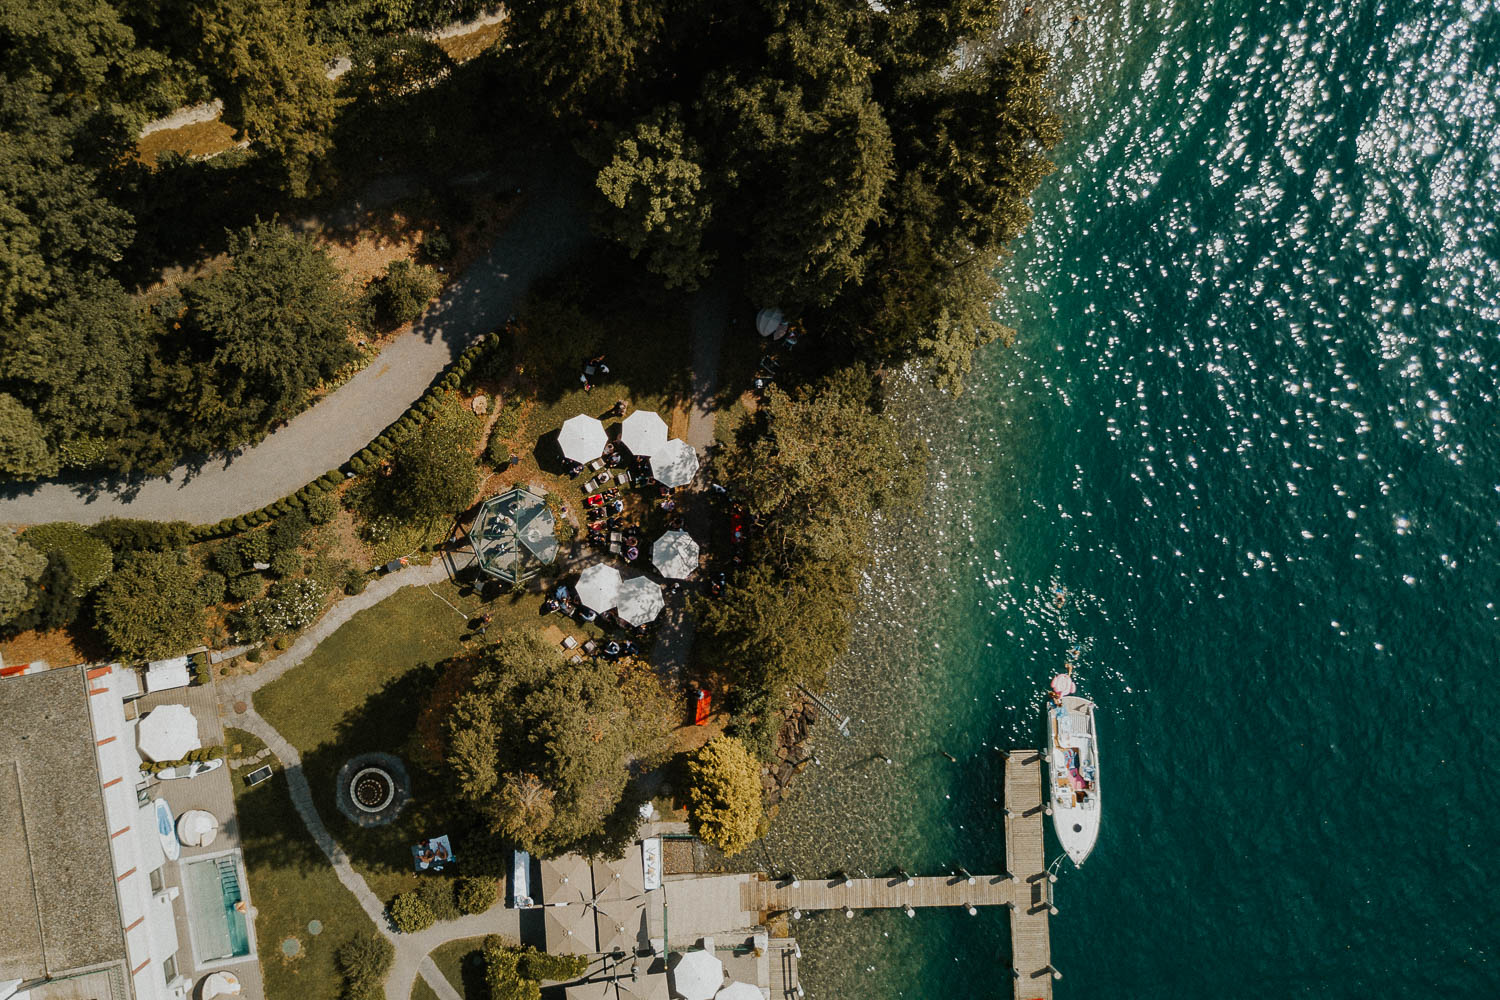 Vitznauerhof Luzern Wedding - Oleg Tru destination wedding photographer